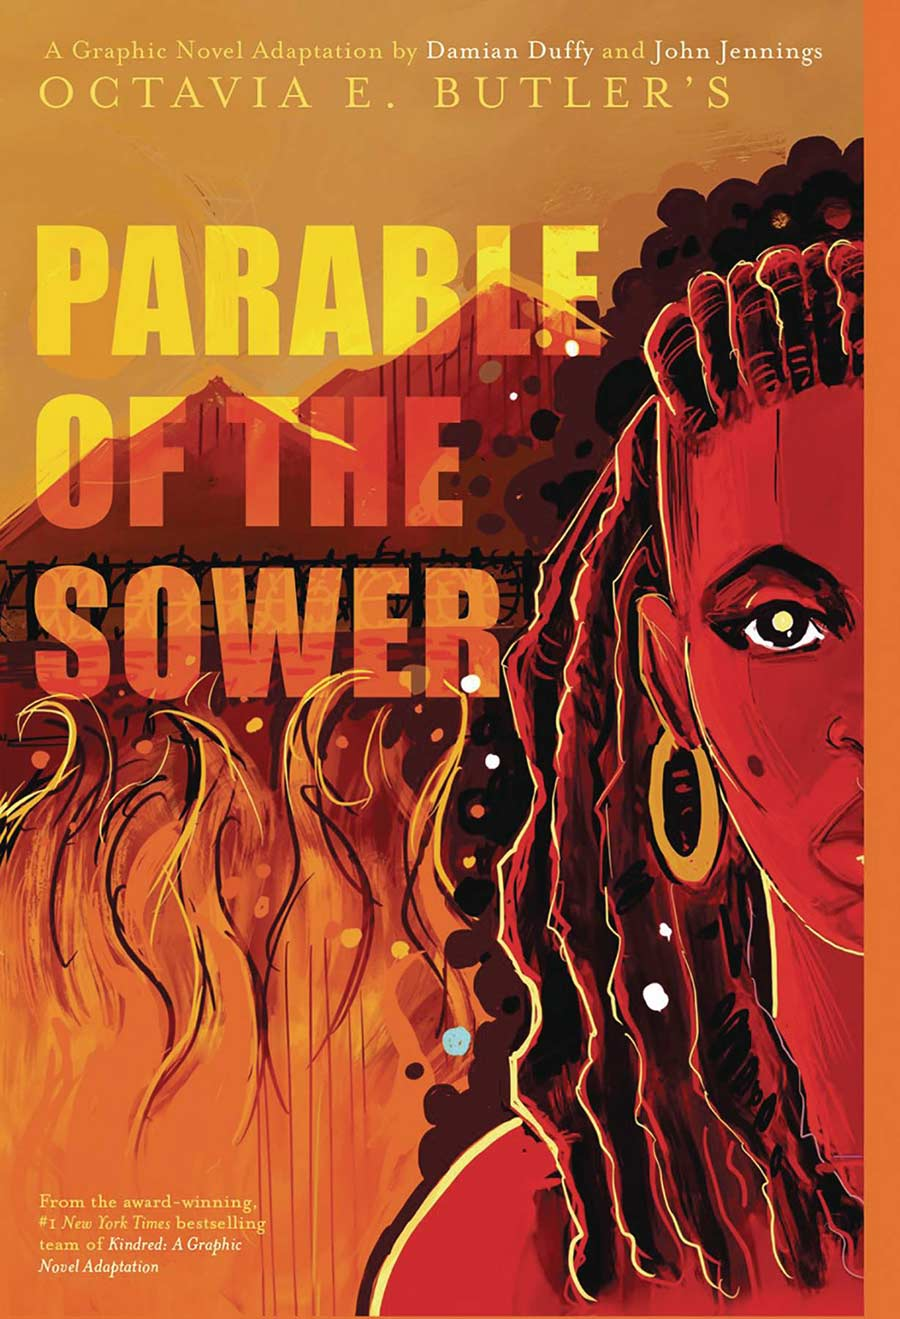 Octavia Butler's Parable Of The Sower